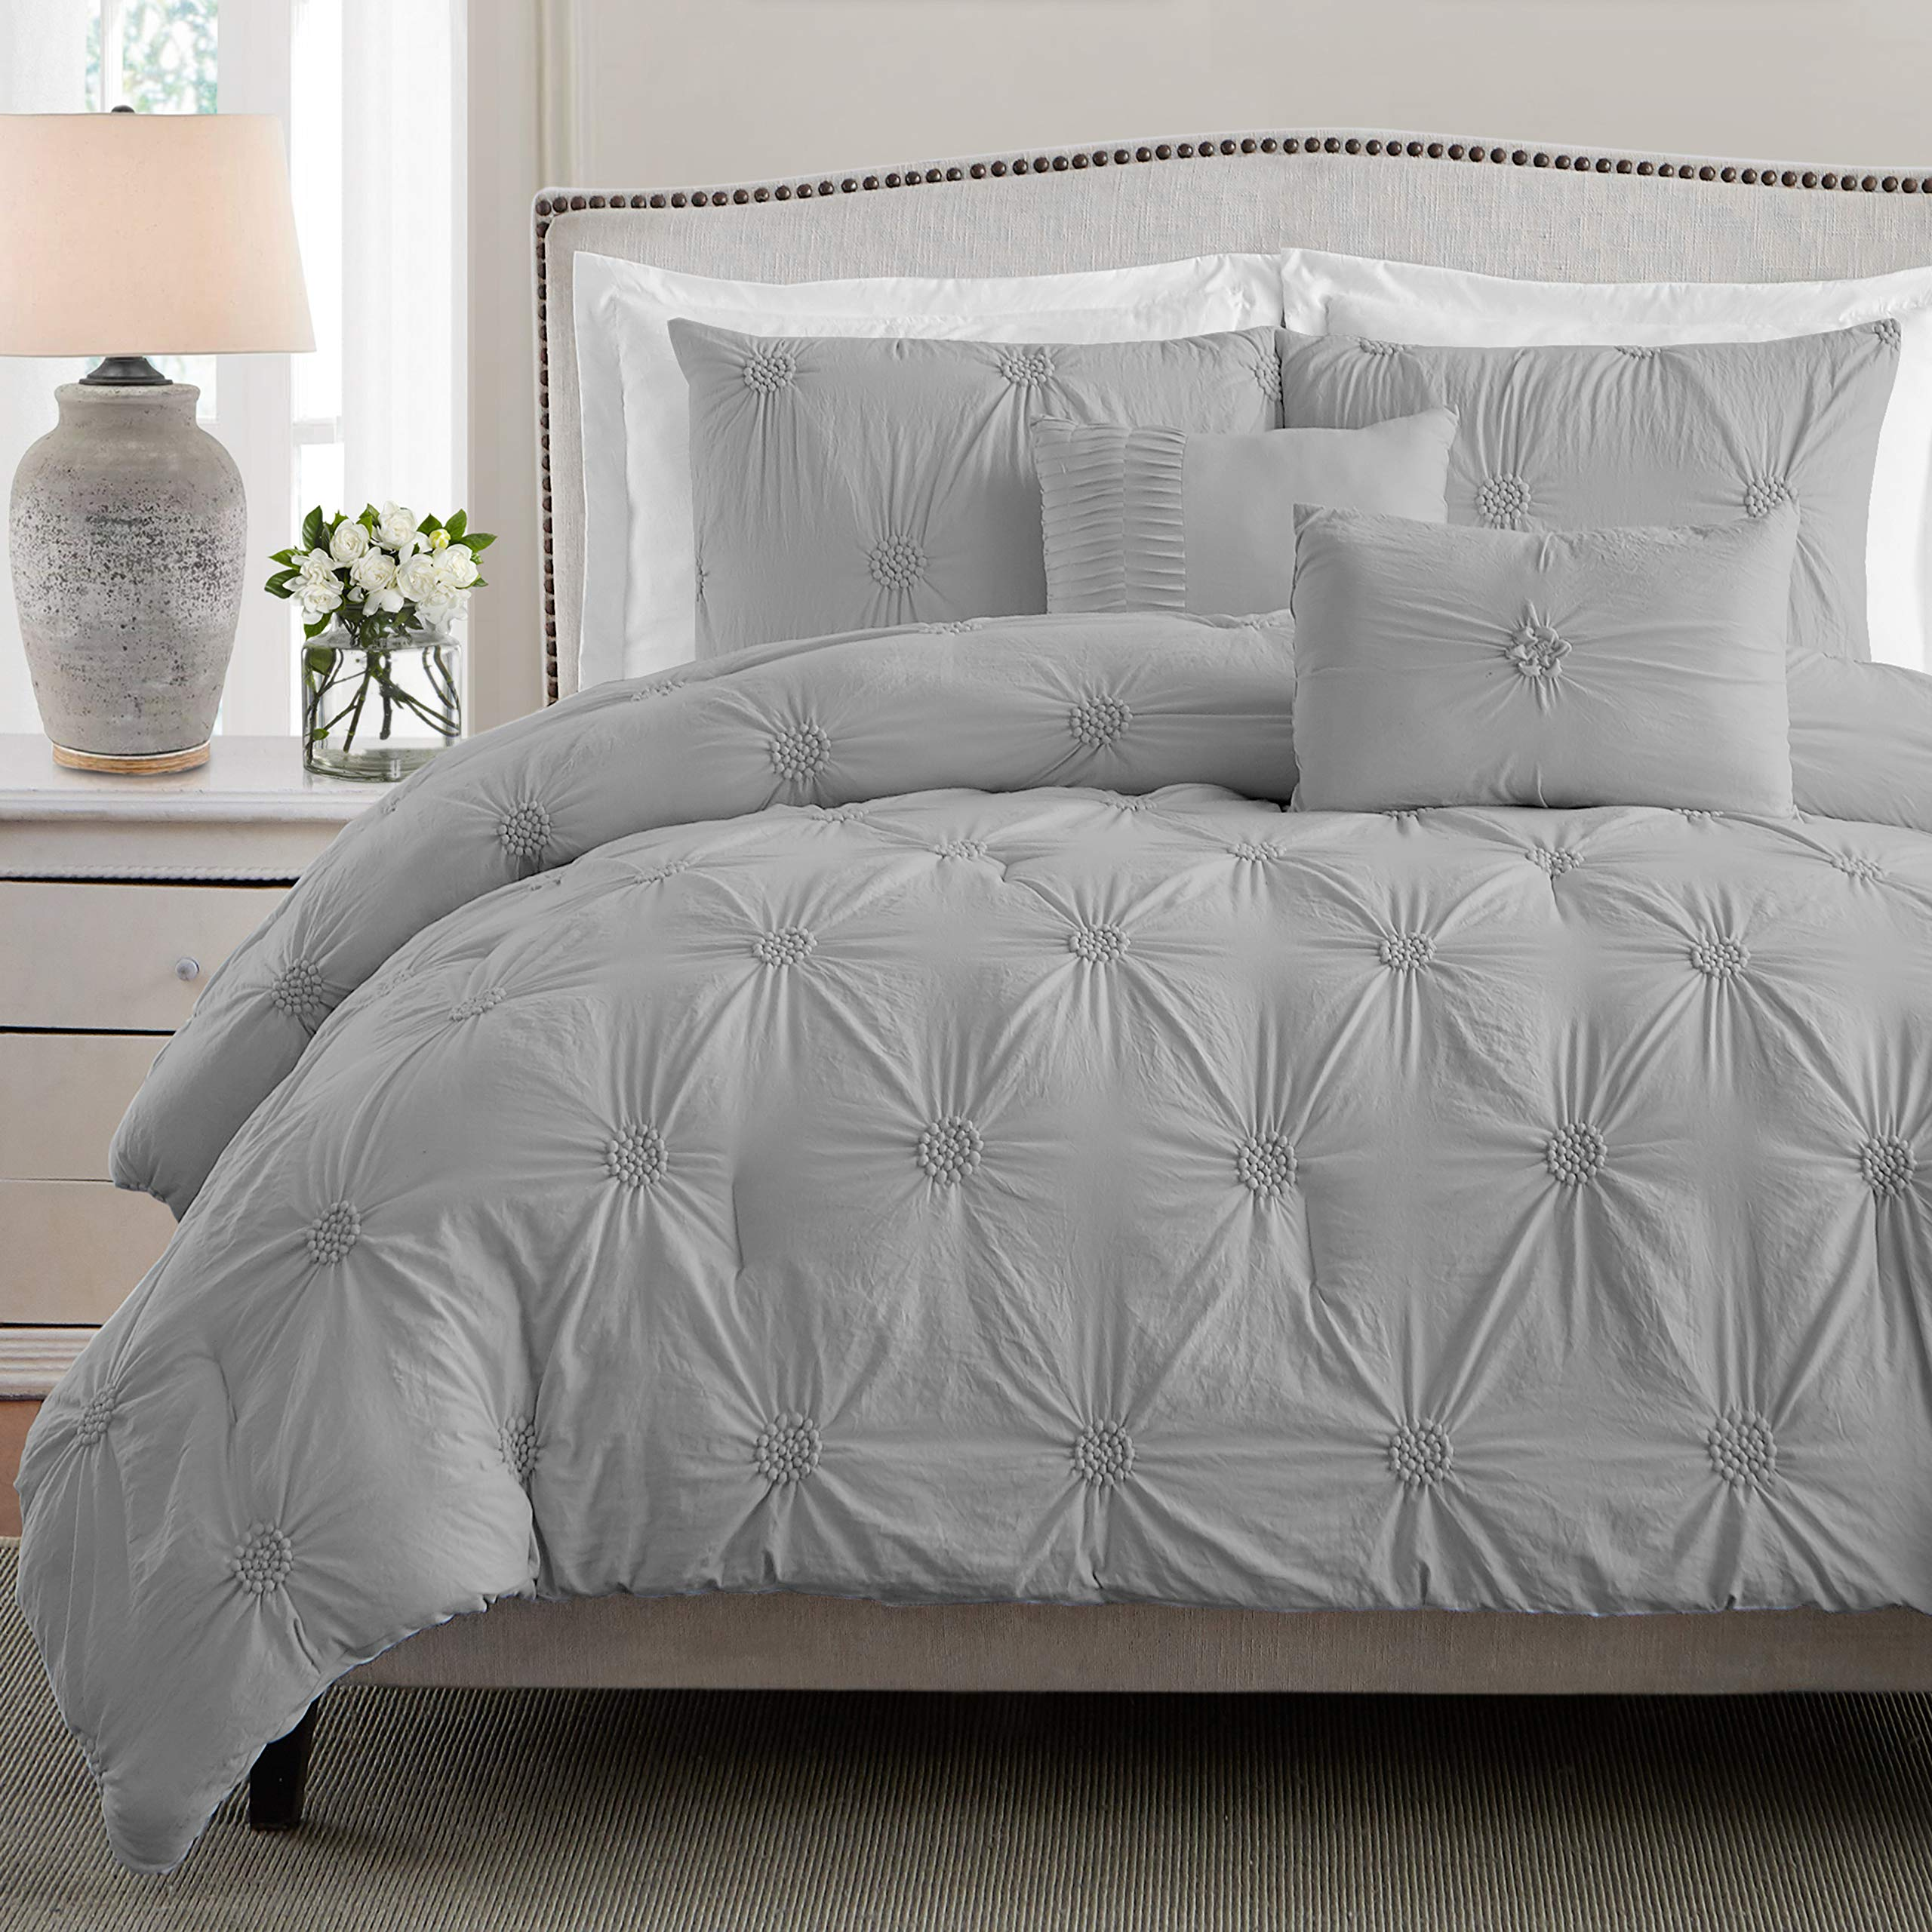 CDM product Swift Home Premium Bedding Set Collection 2-Piece Floral Ruched Pinch Pleat Pintuck Comforter Set - Twin/Twin XL, Gray small thumbnail image